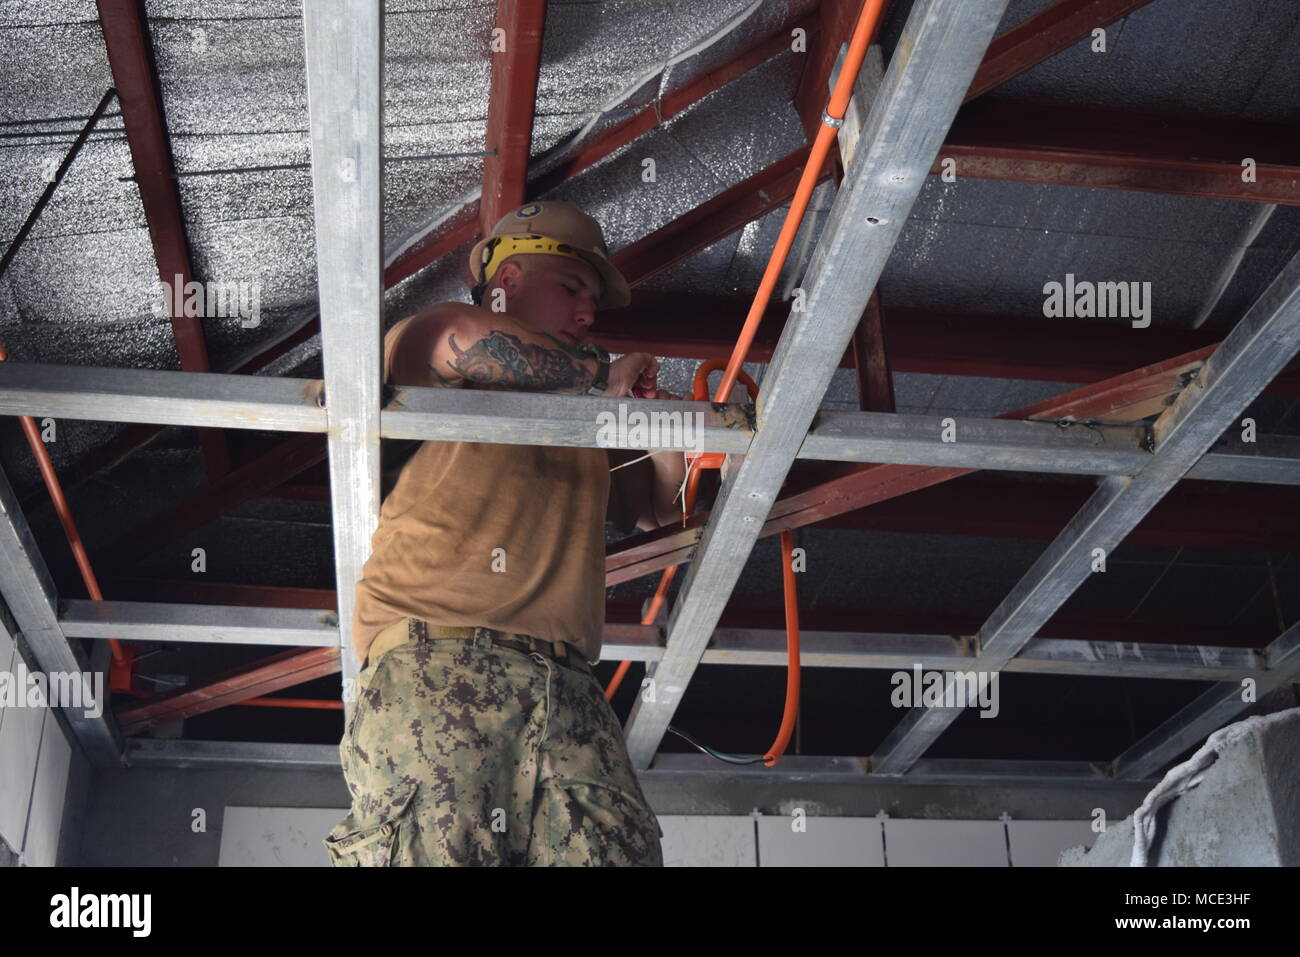 180220 N No181 0323 Palawan Philippines Feb 20 2018 Electrical Wiring Junction Box Attic 3rd Class Isiah Gotz Assigned To Naval Mobile Construction Battalion Nmcb 4 Connects Wires In An Overhead The Latrine